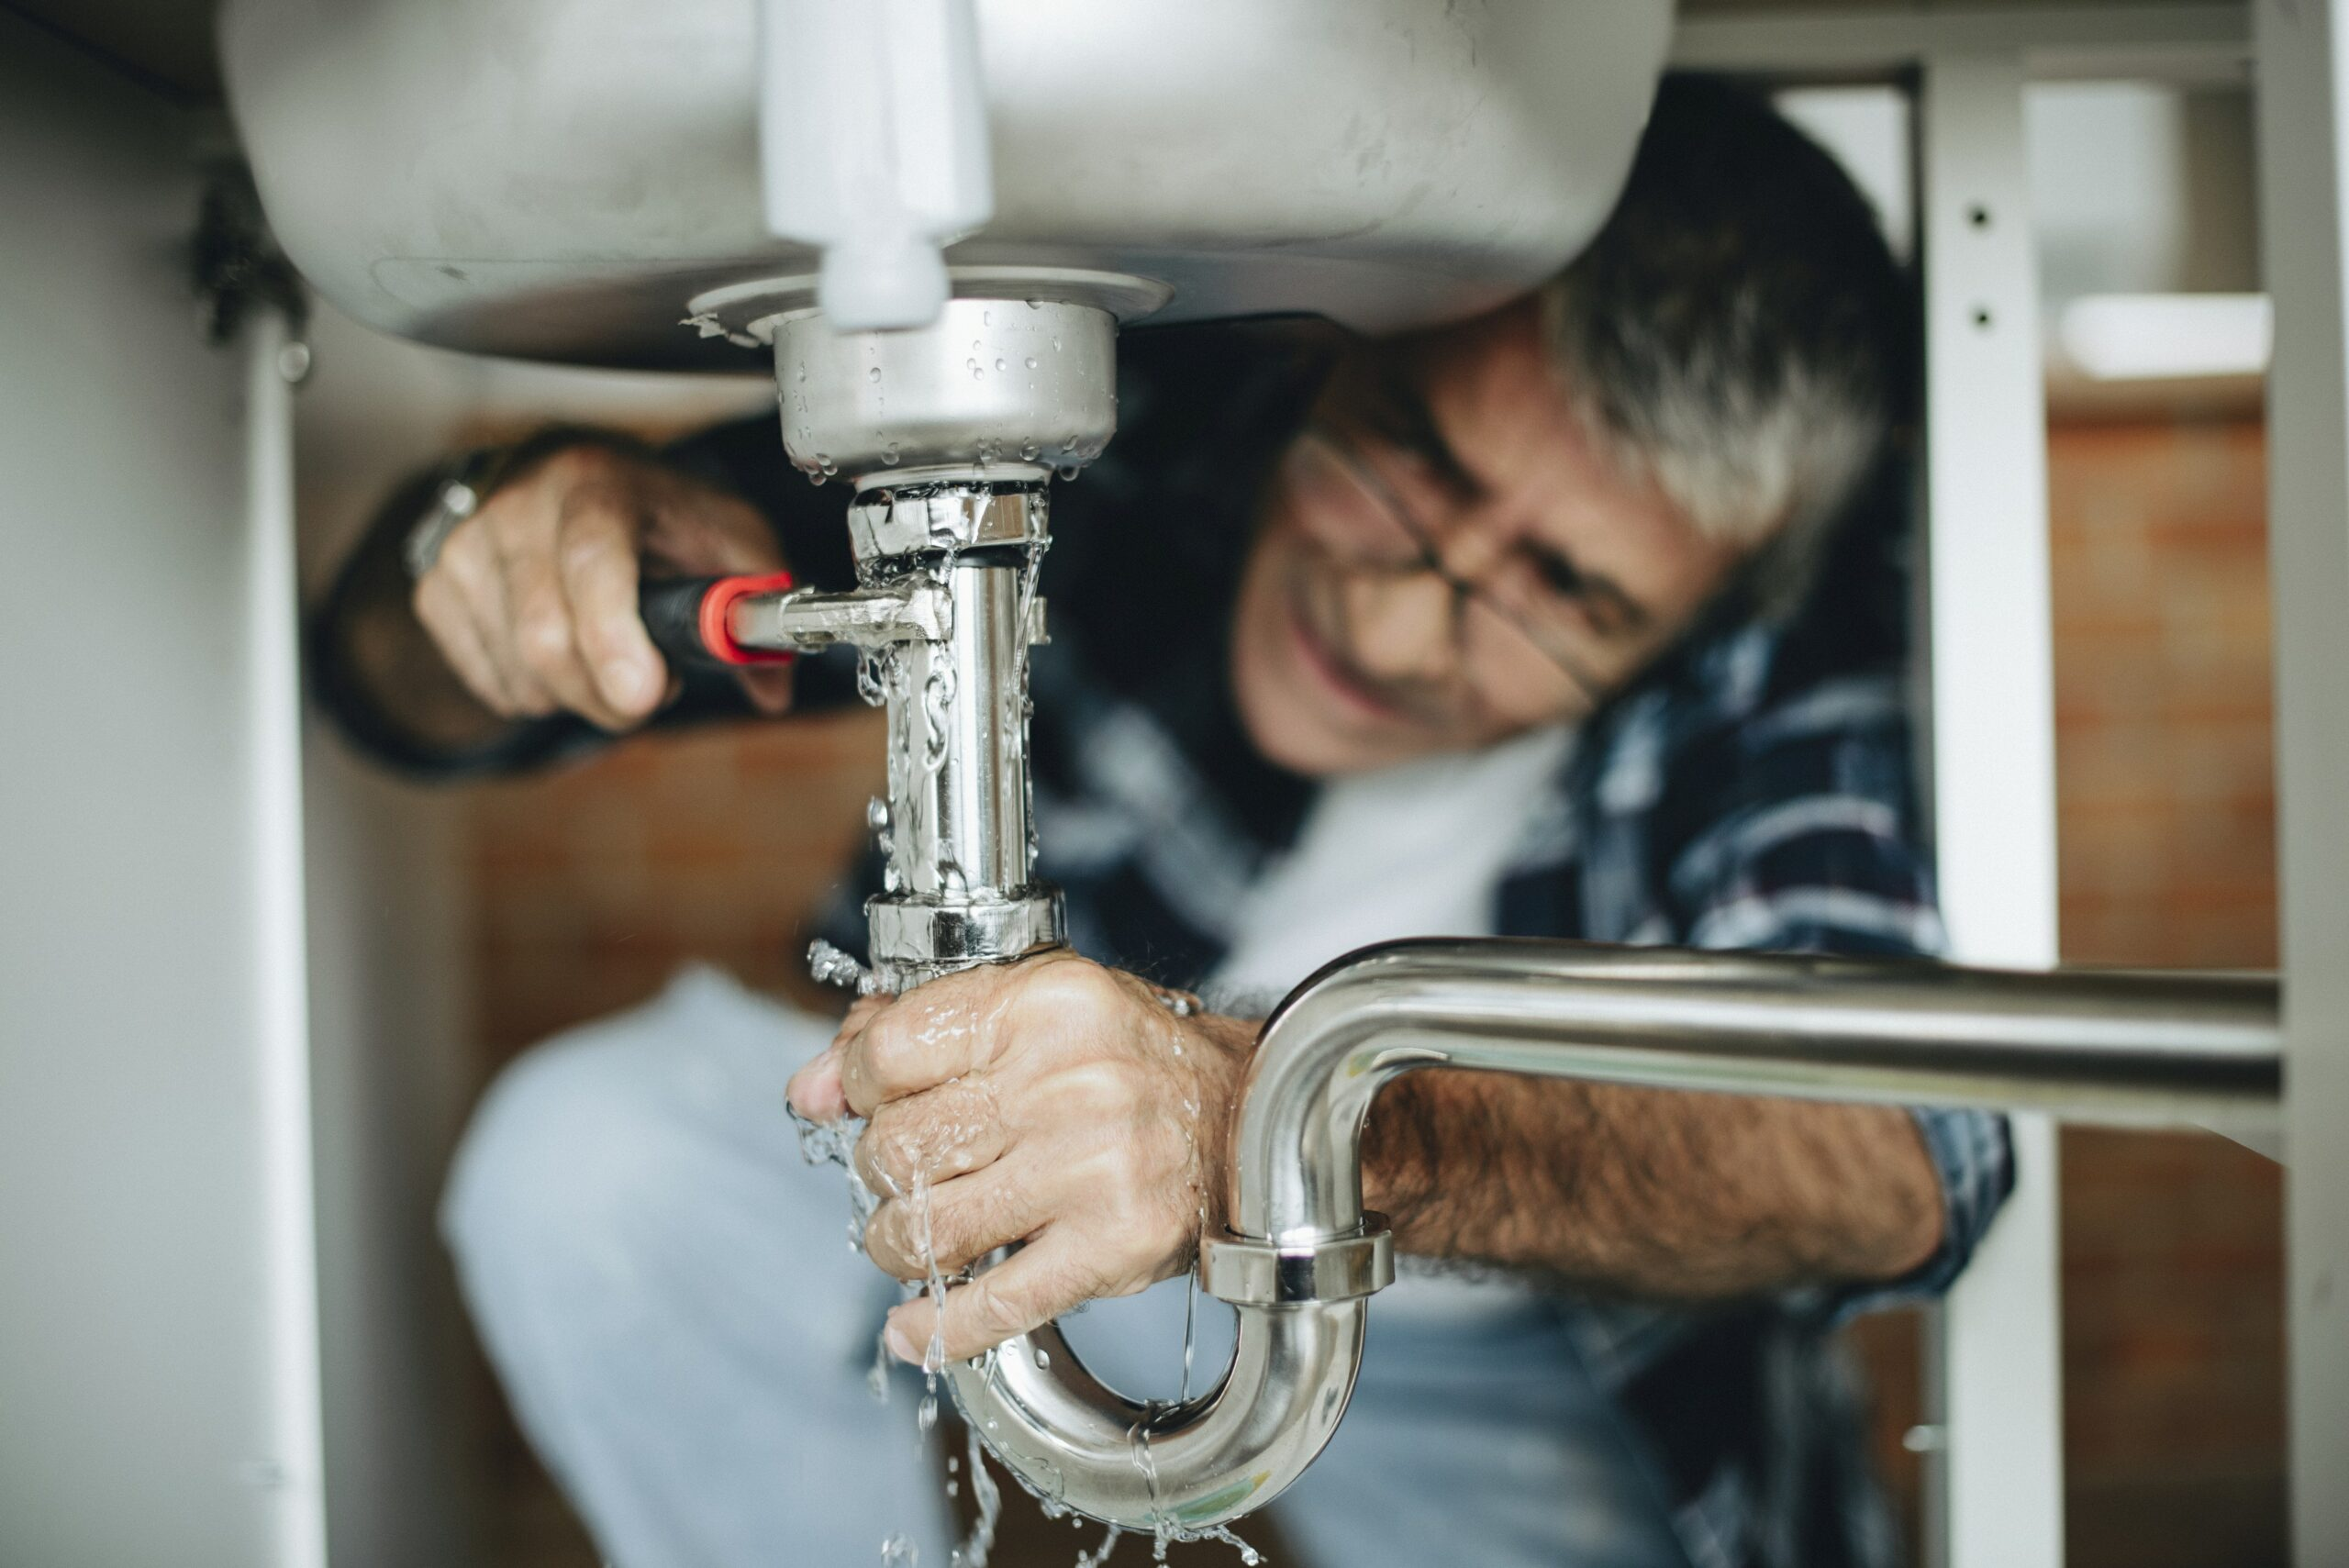 Man trying to fix leaking pipes below sink